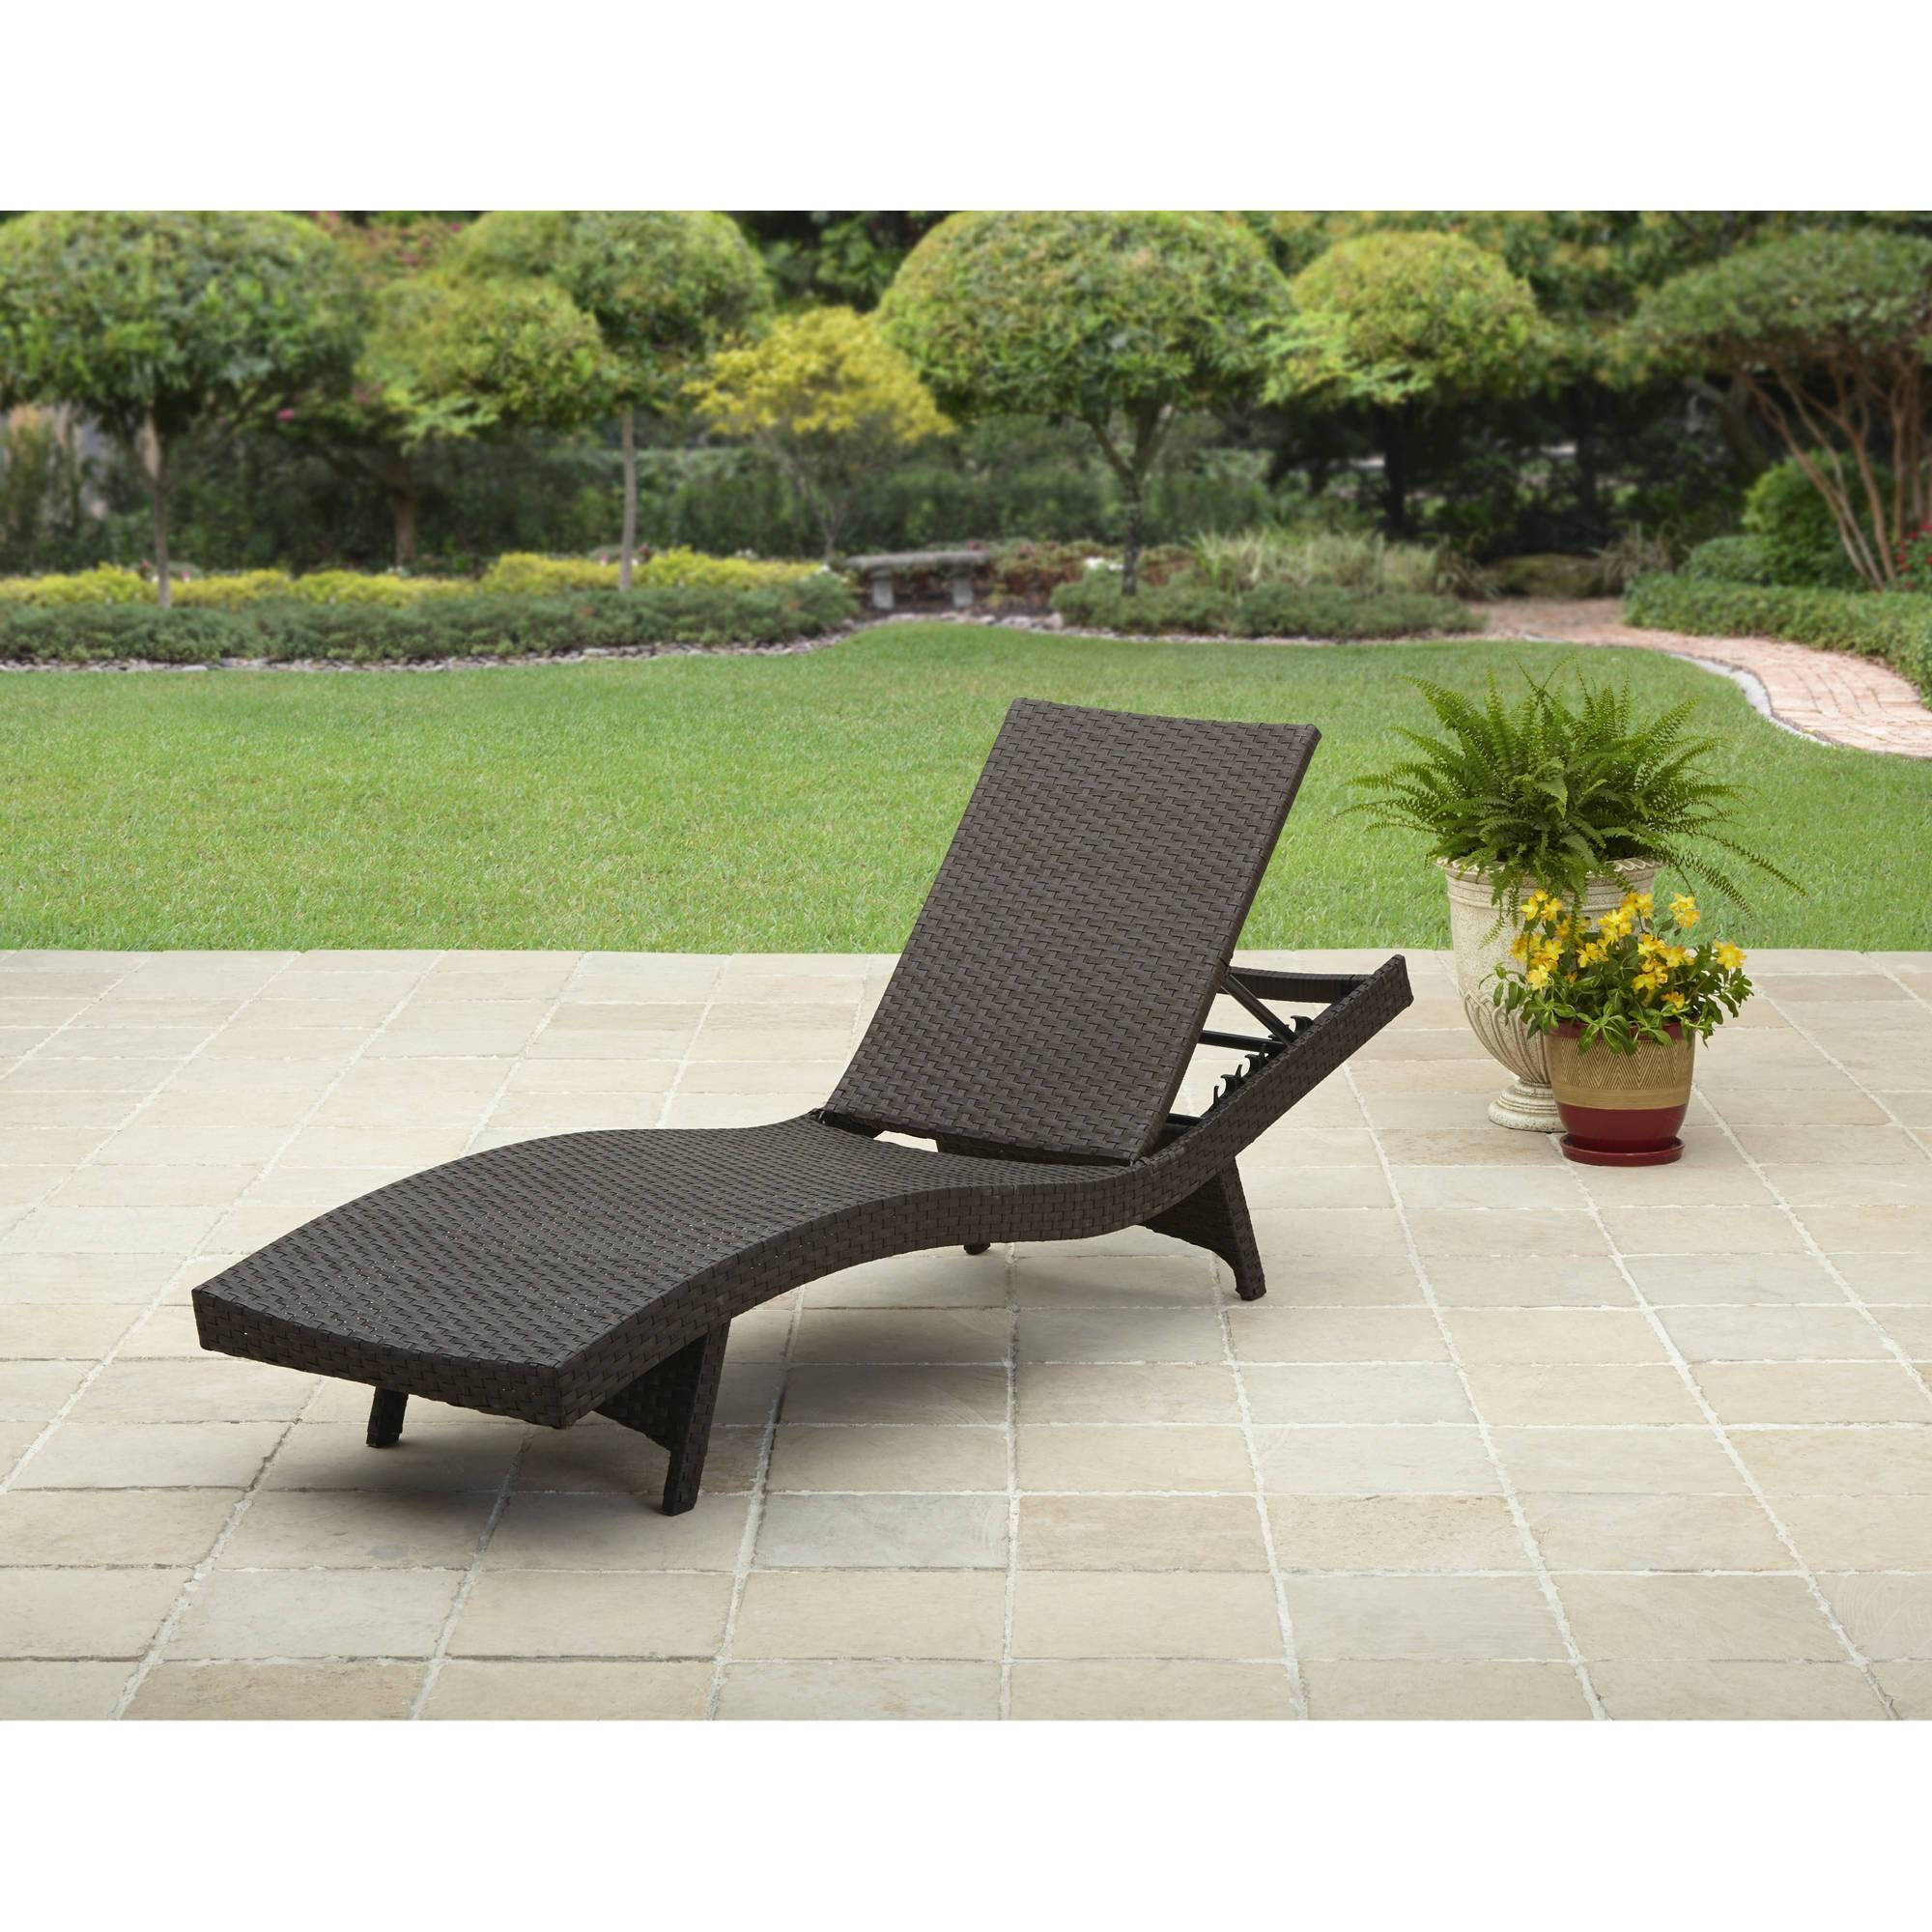 Patio Furniture - Walmart in Outdoor Sofas And Chairs (Image 14 of 15)